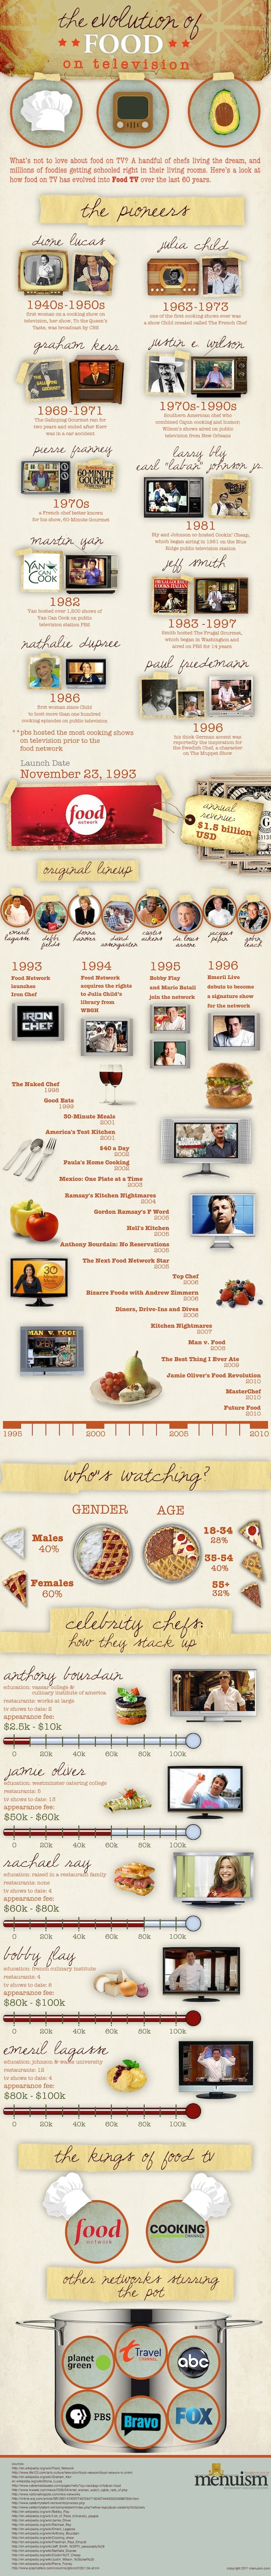 The Evolution Of Food On Television[INFOGRAPHIC]Decent Mixed, Food Network, Broadcast Stations, Television, Tv Infographic, Diver Compare, Food Infographic, Tvs, Evolution